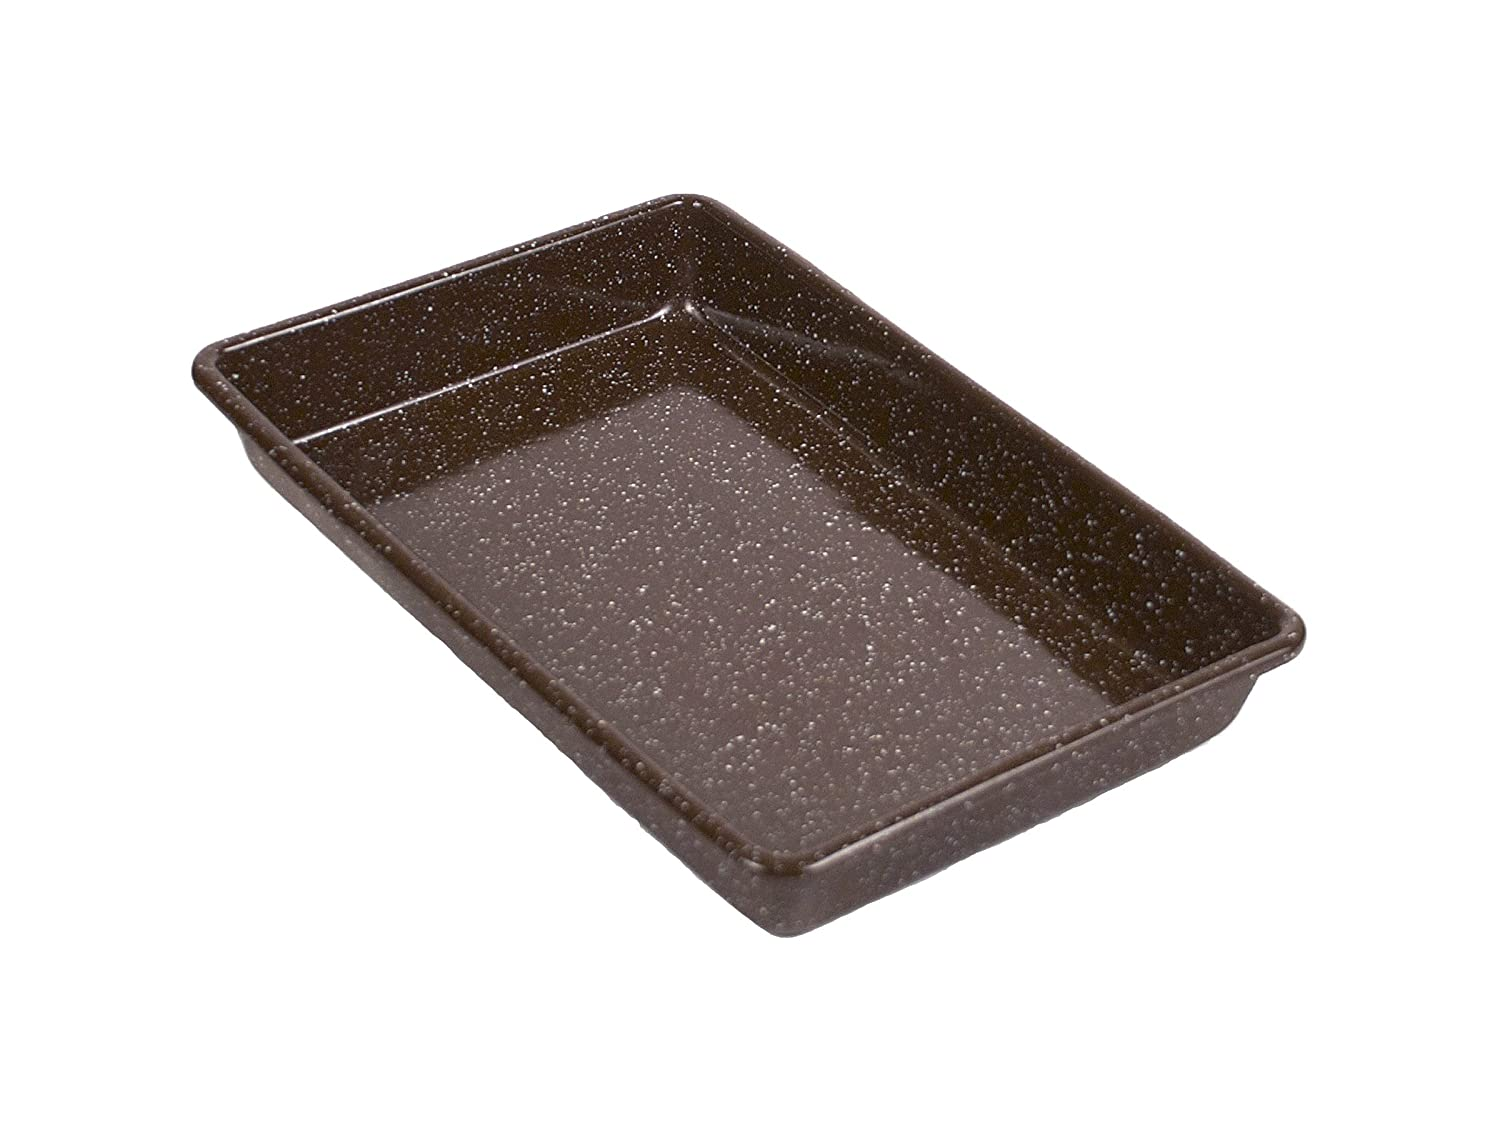 Granite Ware Better Browning Rectangle Cake Pan, 11-inch by 7-inch